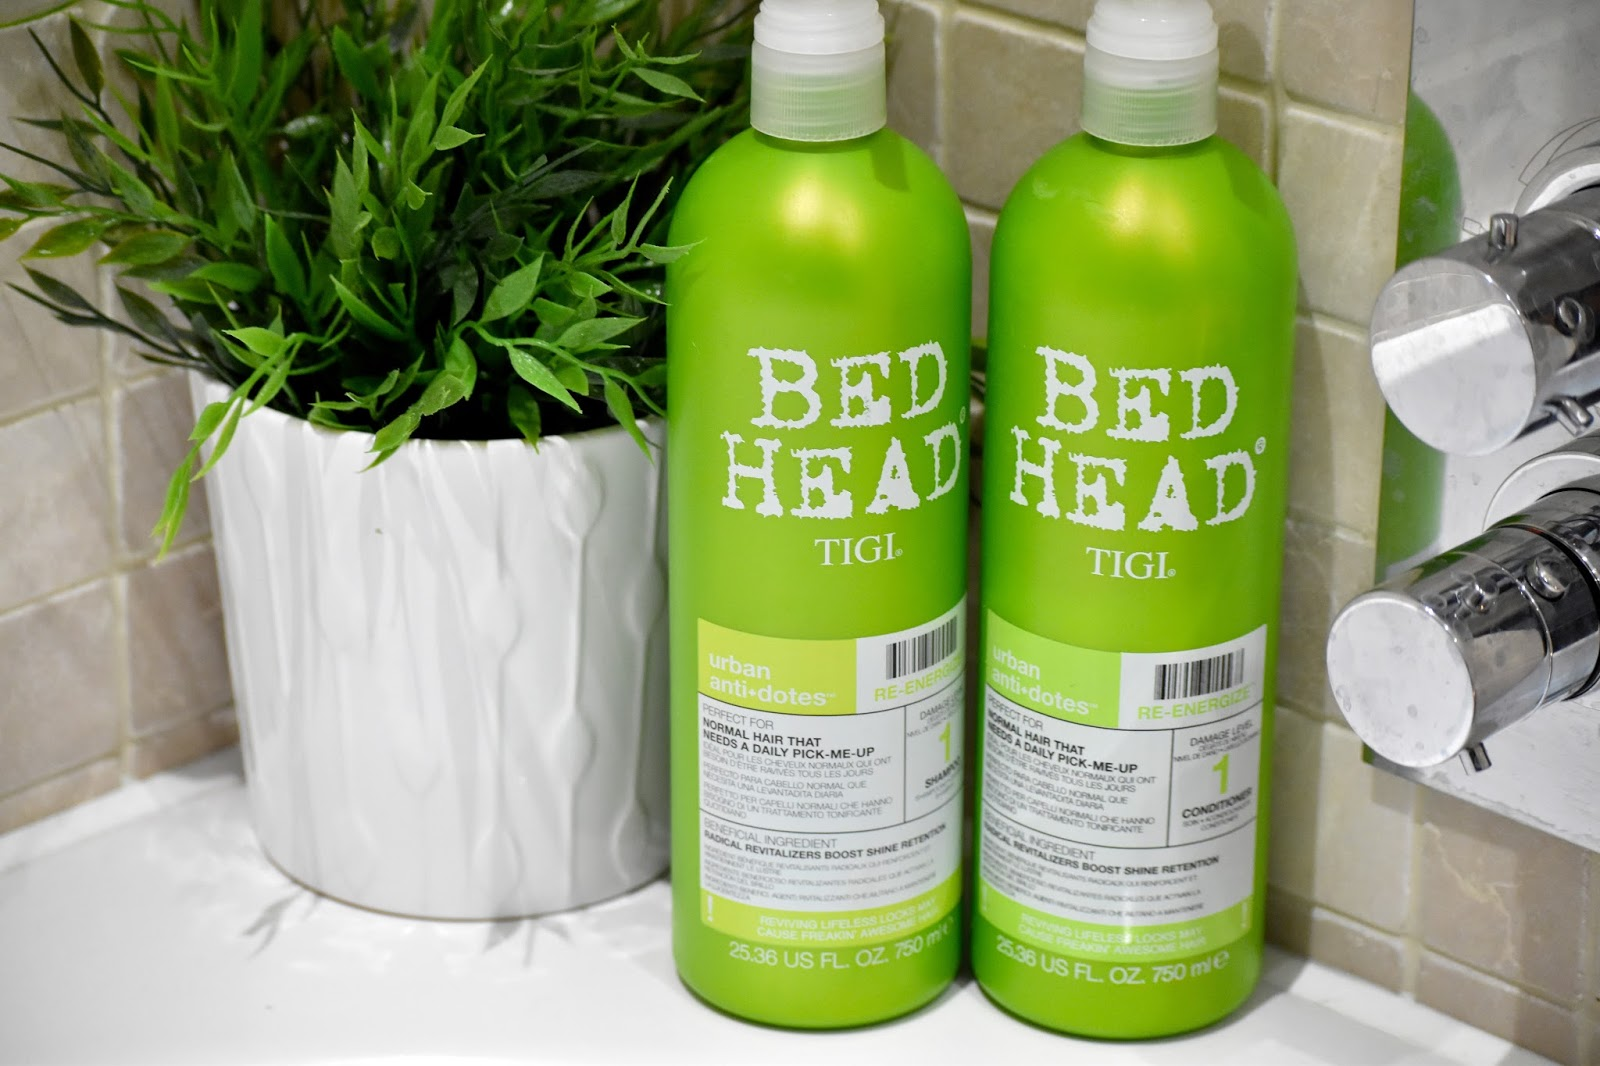 Bed Head shampoo and conditioner